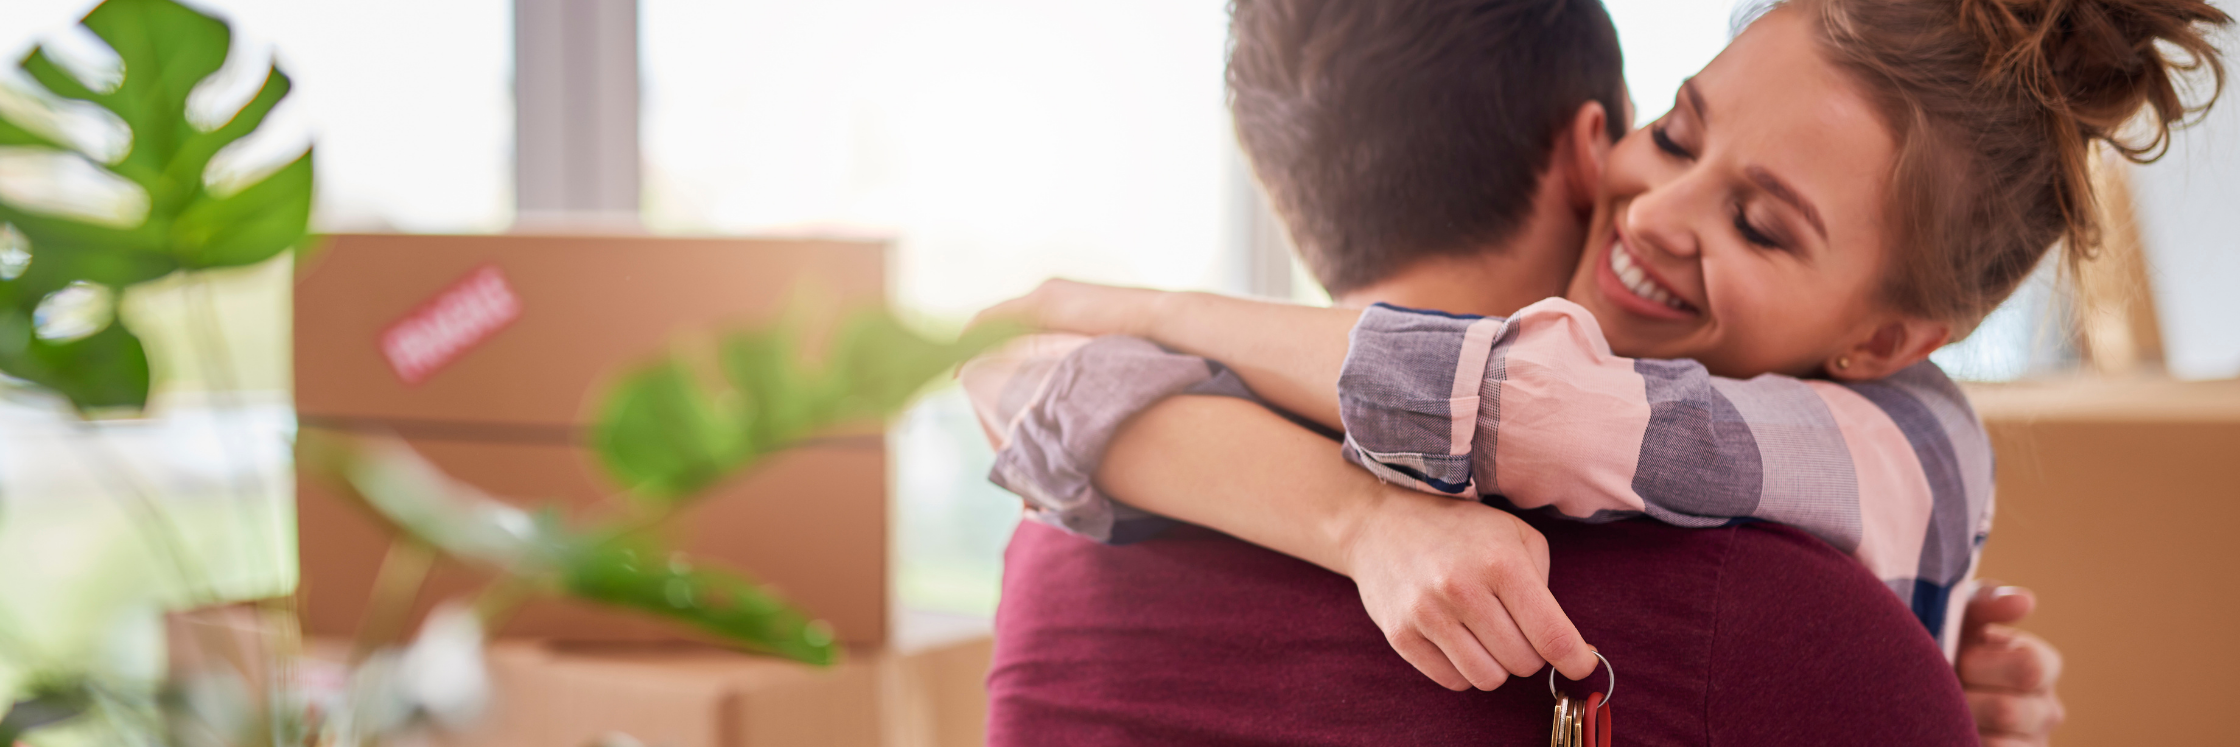 couple hugging in front of moving boxes